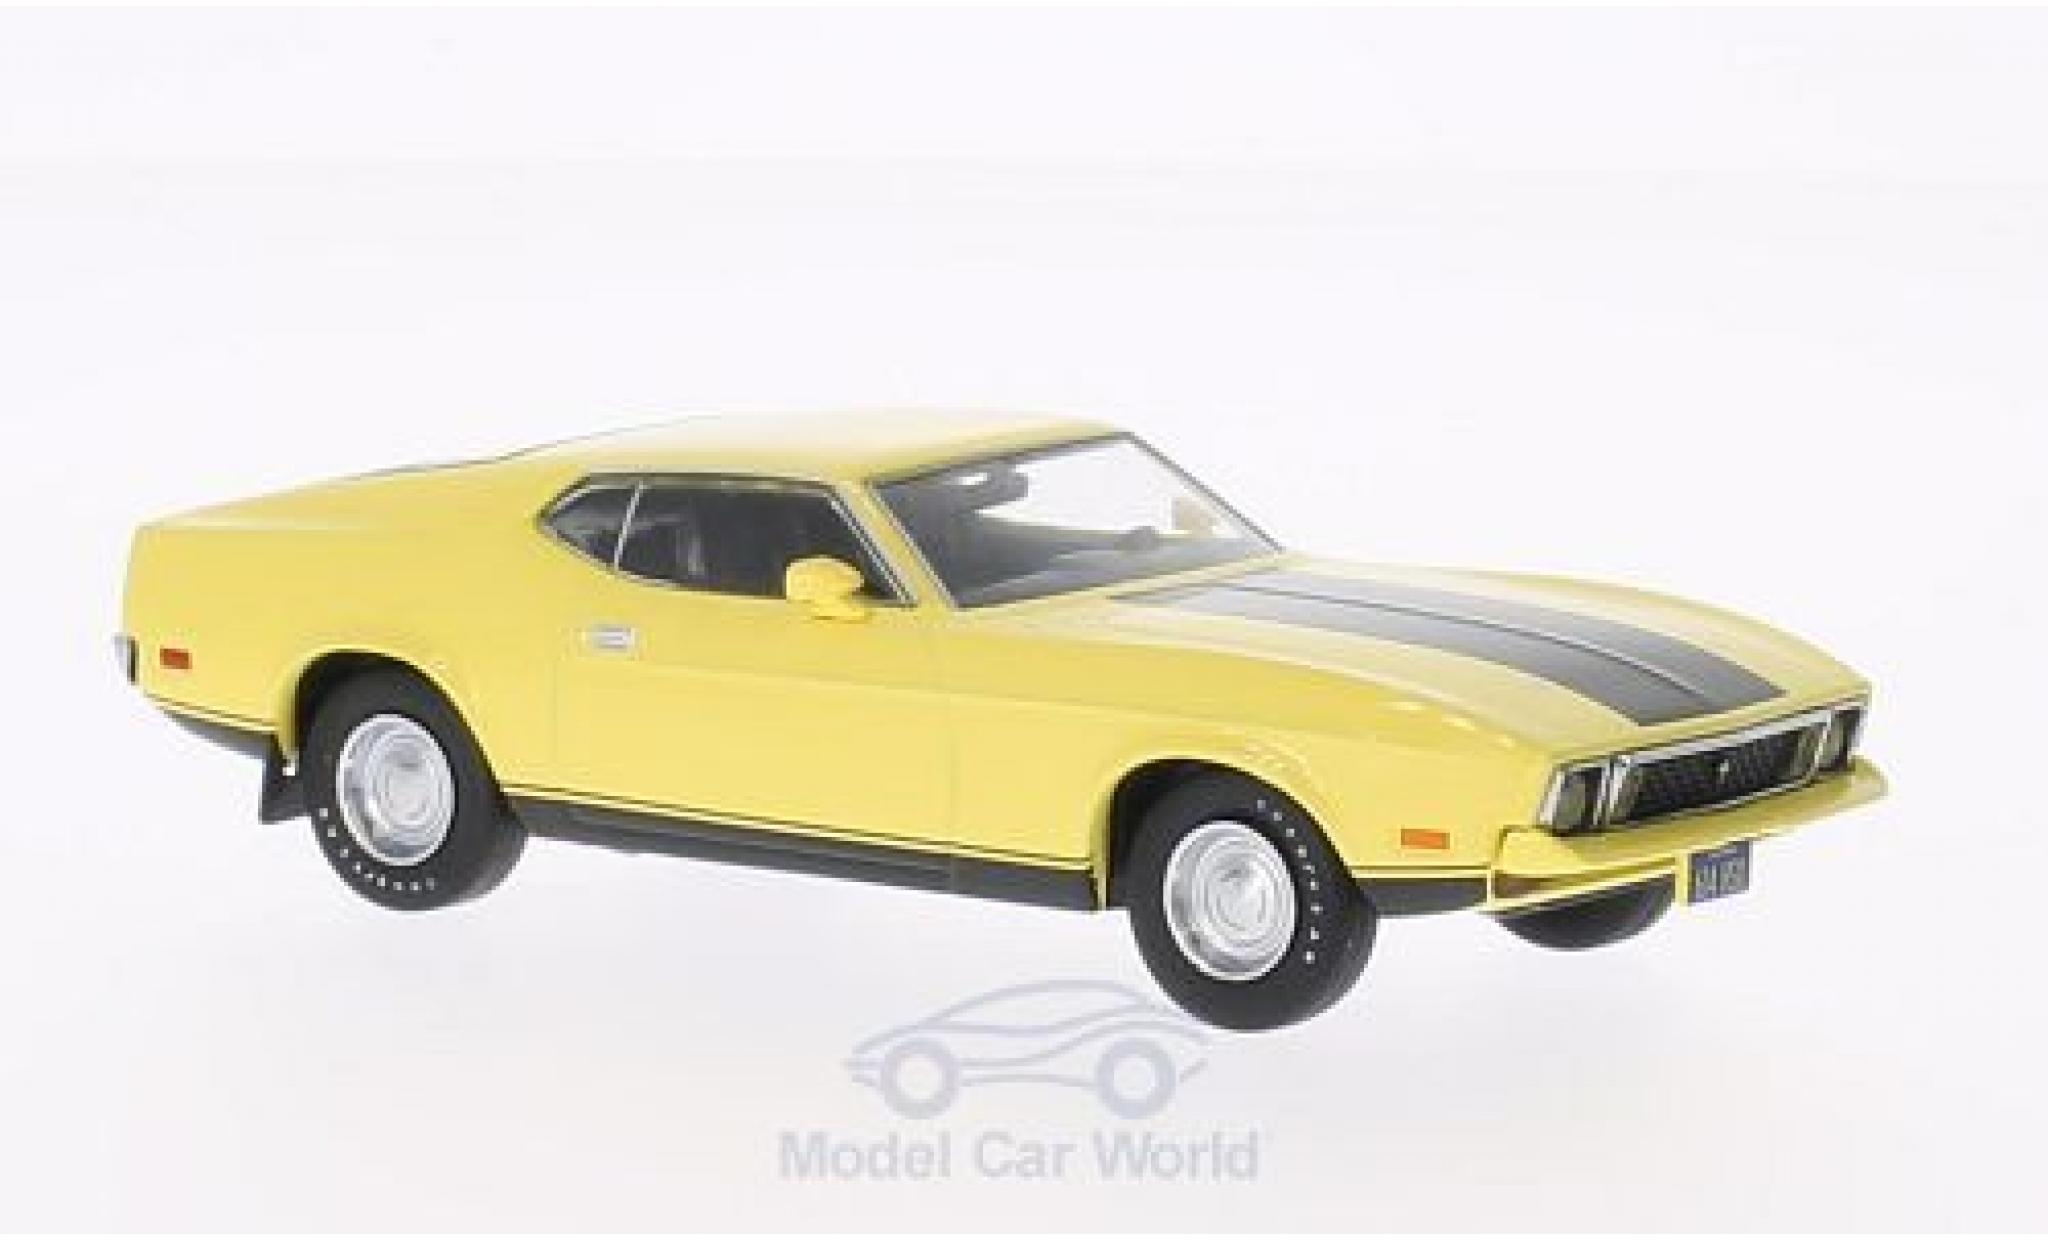 Ford Mustang 1/43 Greenlight Mach 1 Eleanor jaune Gone in 60 Seconds 1973 Eleanor